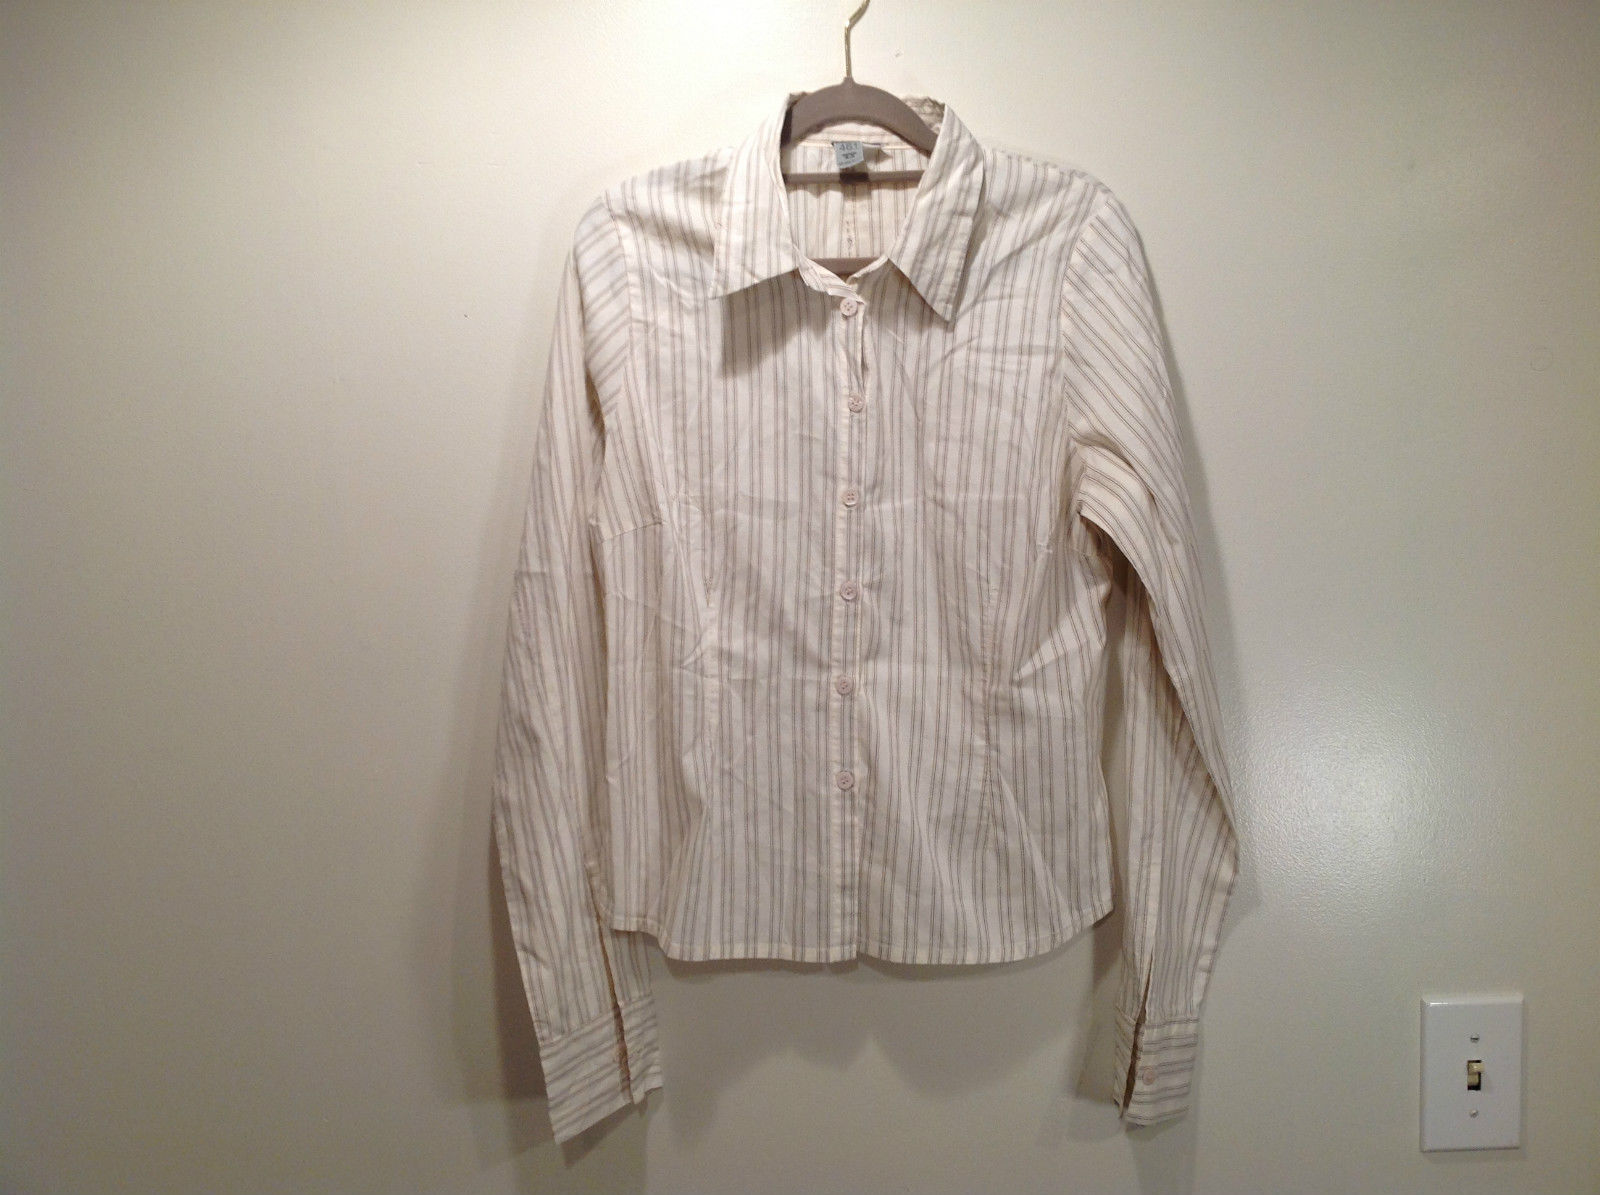 Cream Colored Long Sleeve Collared Button Up Striped Blouse No Size Tag